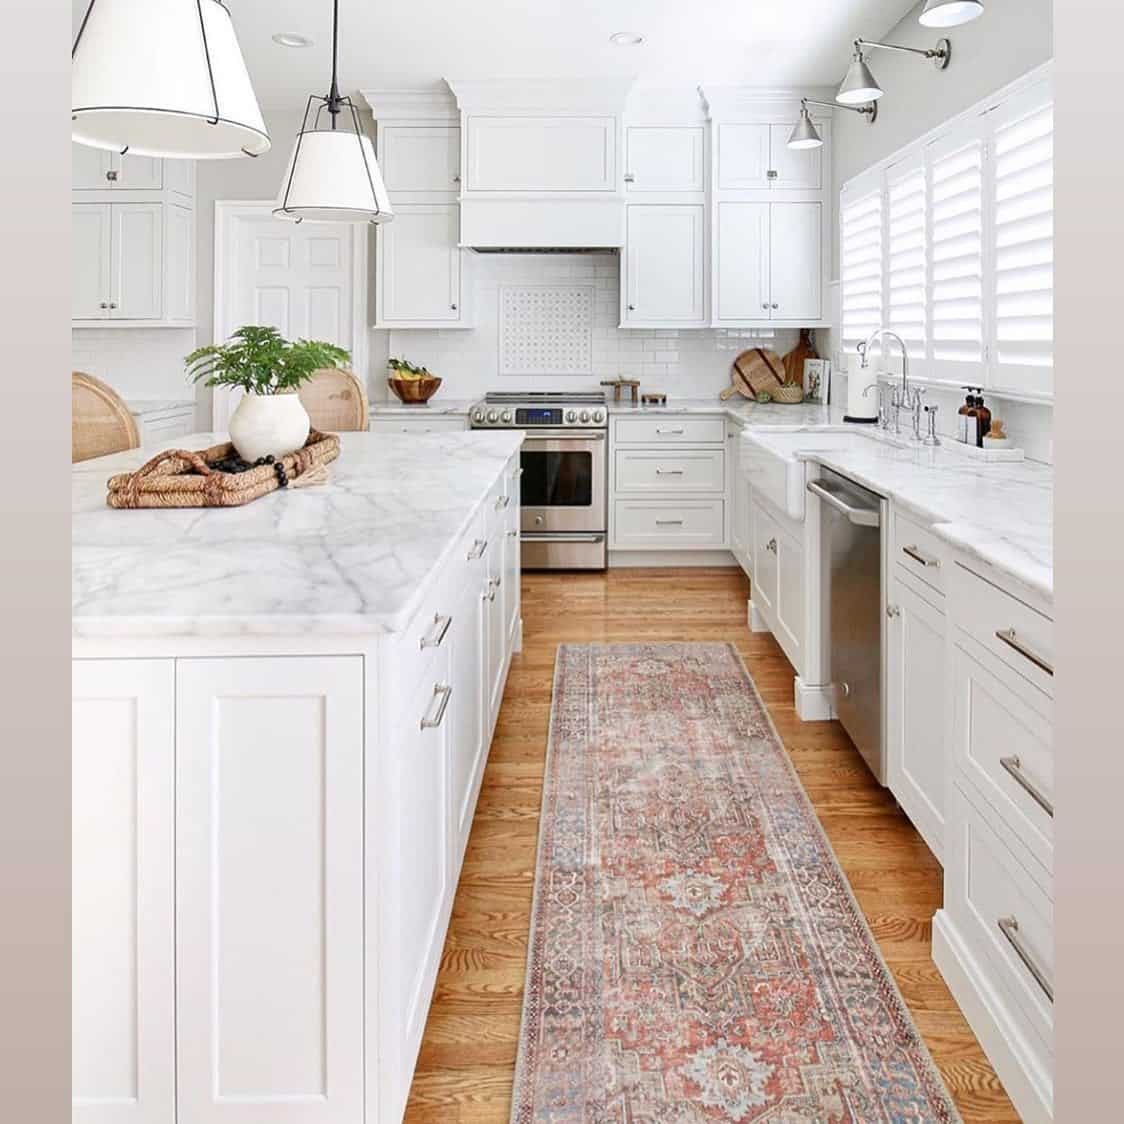 Best Area Rug for Kitchen